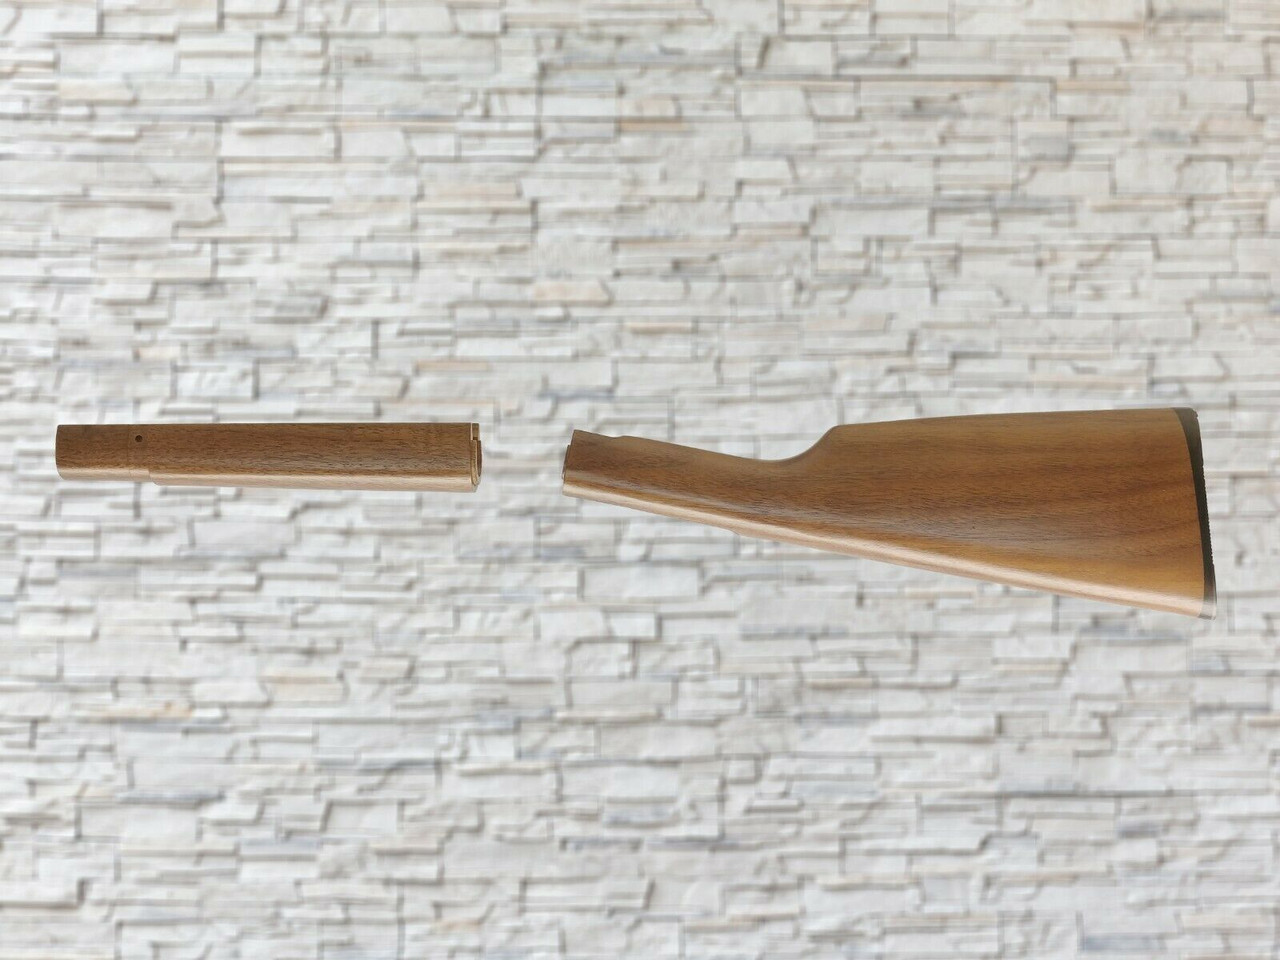 Boyds Field Design Walnut Wood Stock for Rossi 92 44/45 Lever-Action Rifle